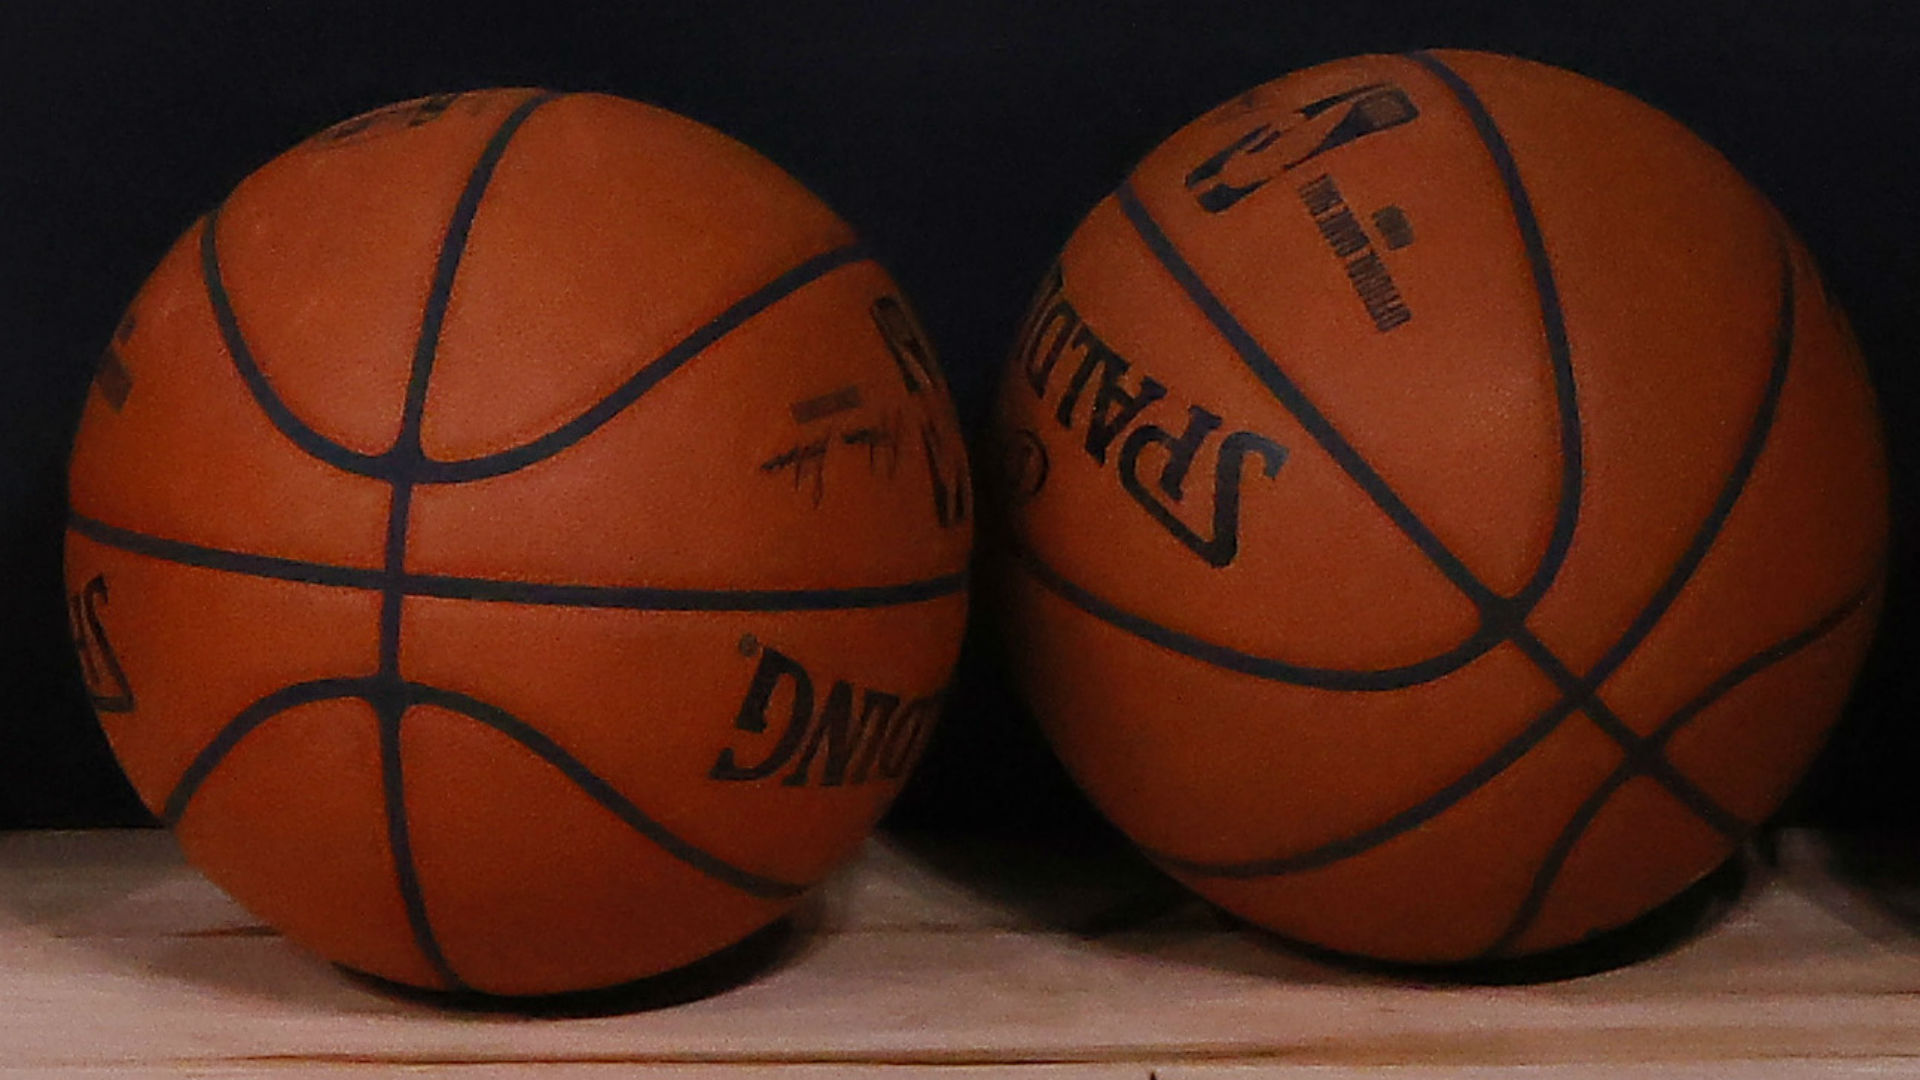 NBA postpones two more games due to COVID-19 concerns